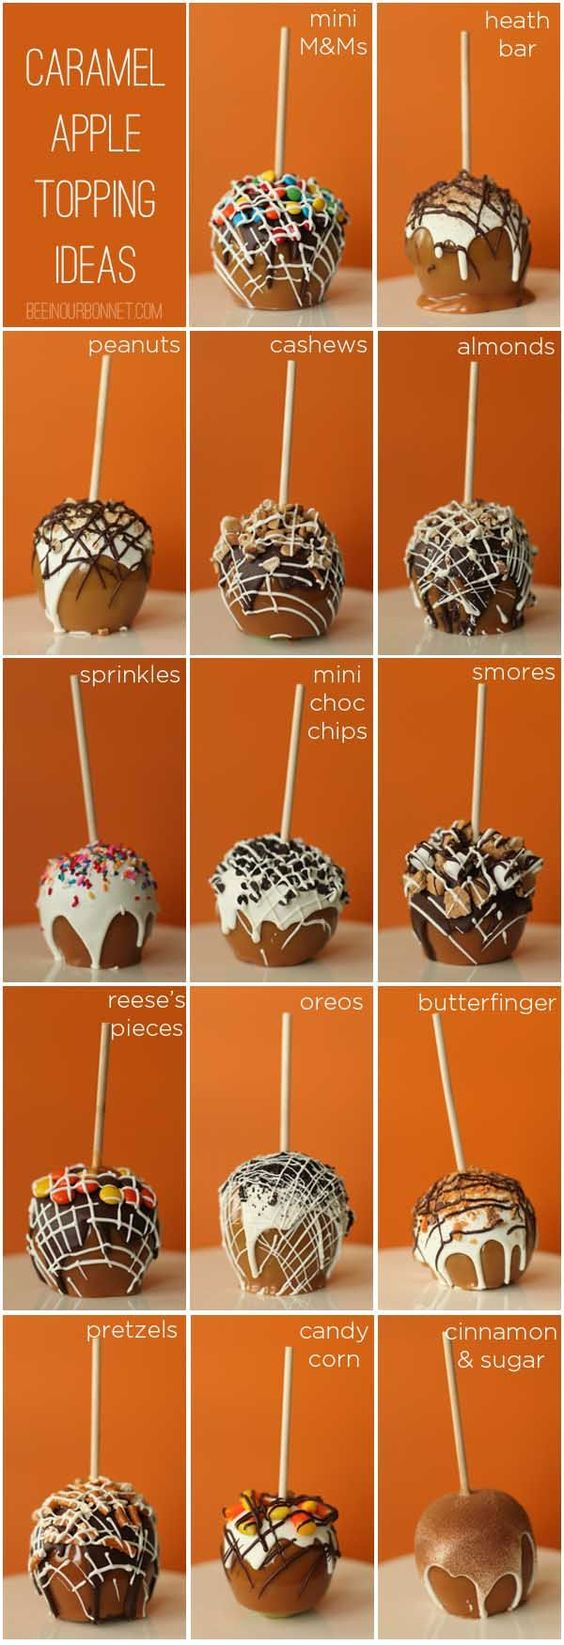 Caramel Apple Topping Ideas -- I would never make these but they make such a pretty picture. :)